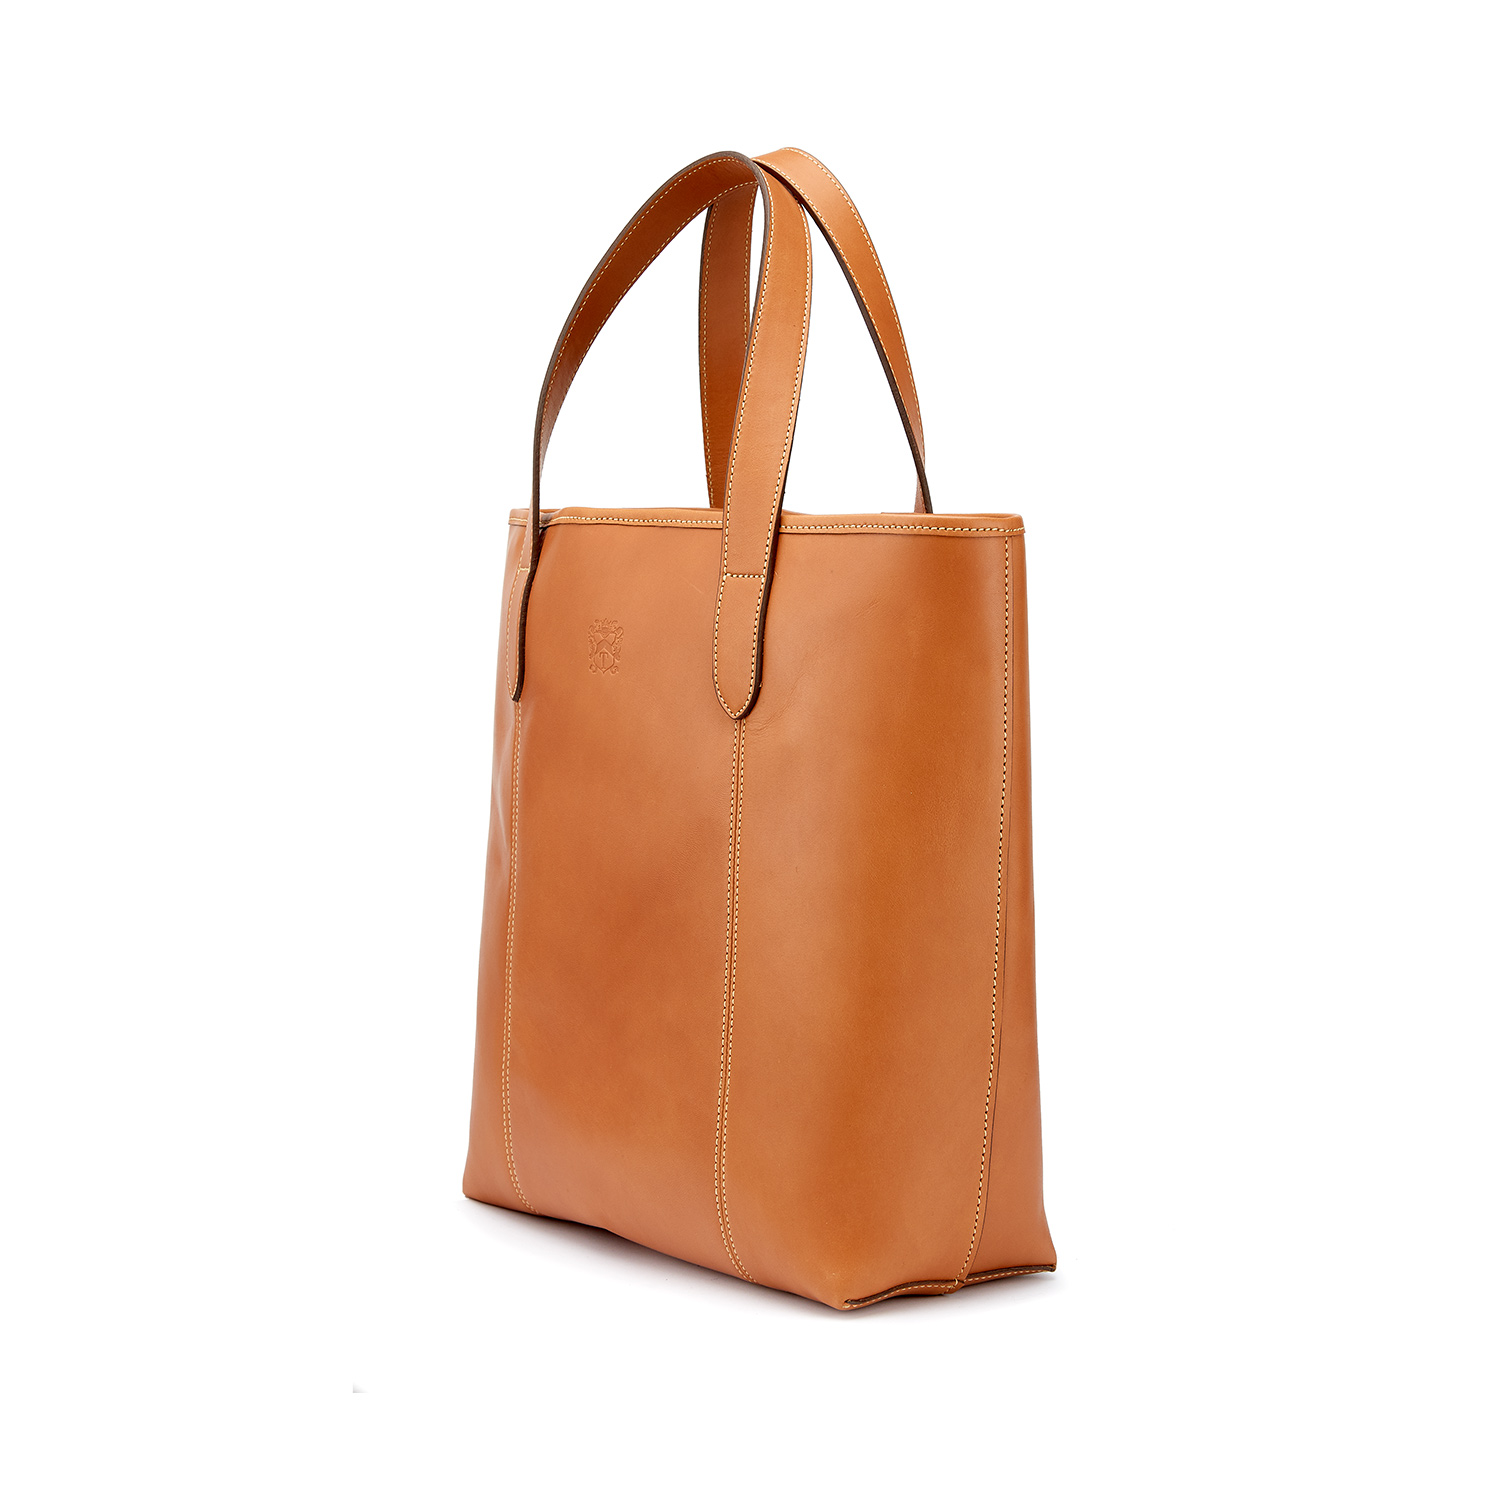 Tusting Leather Chelsea Tote Bag in Tan Angle